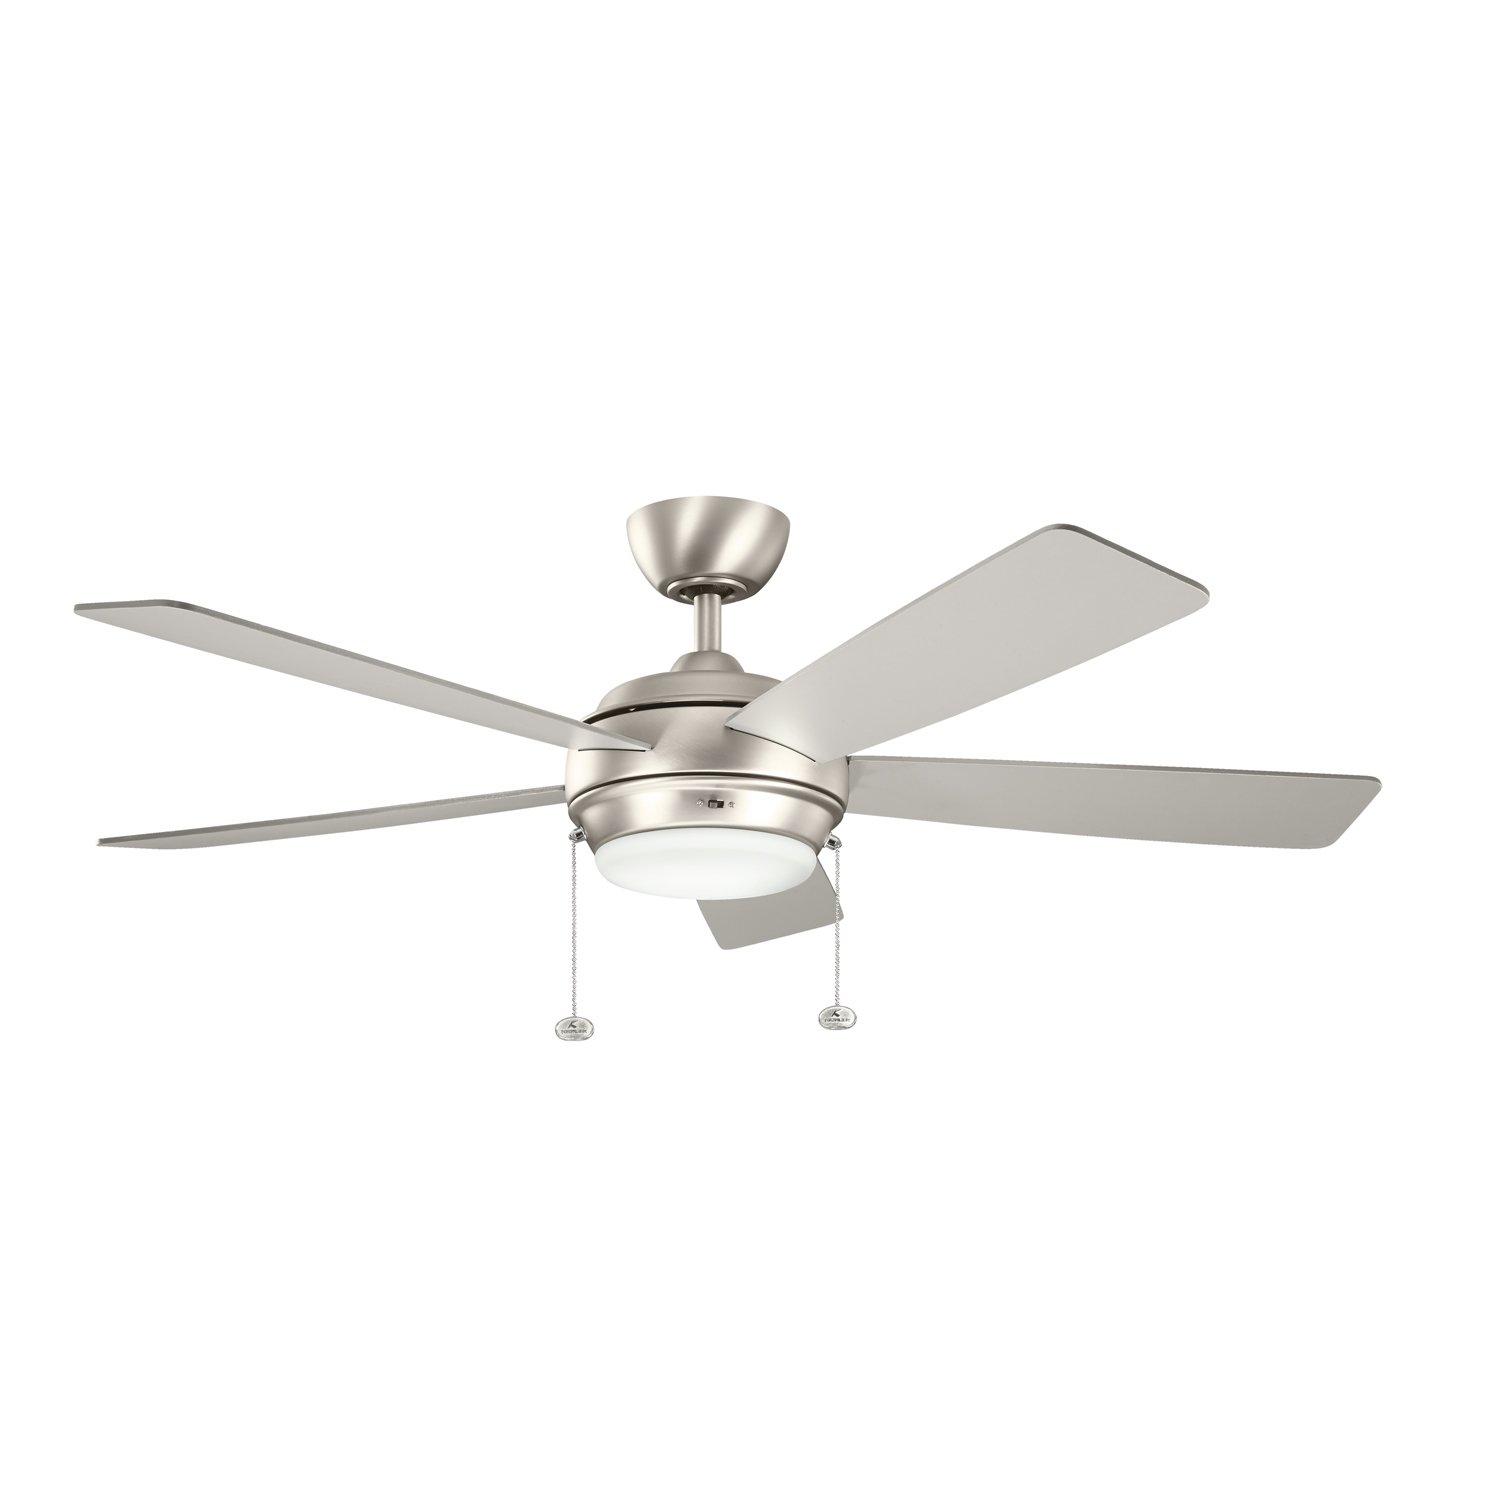 Kichler NI 52 Ceiling Fan Amazon